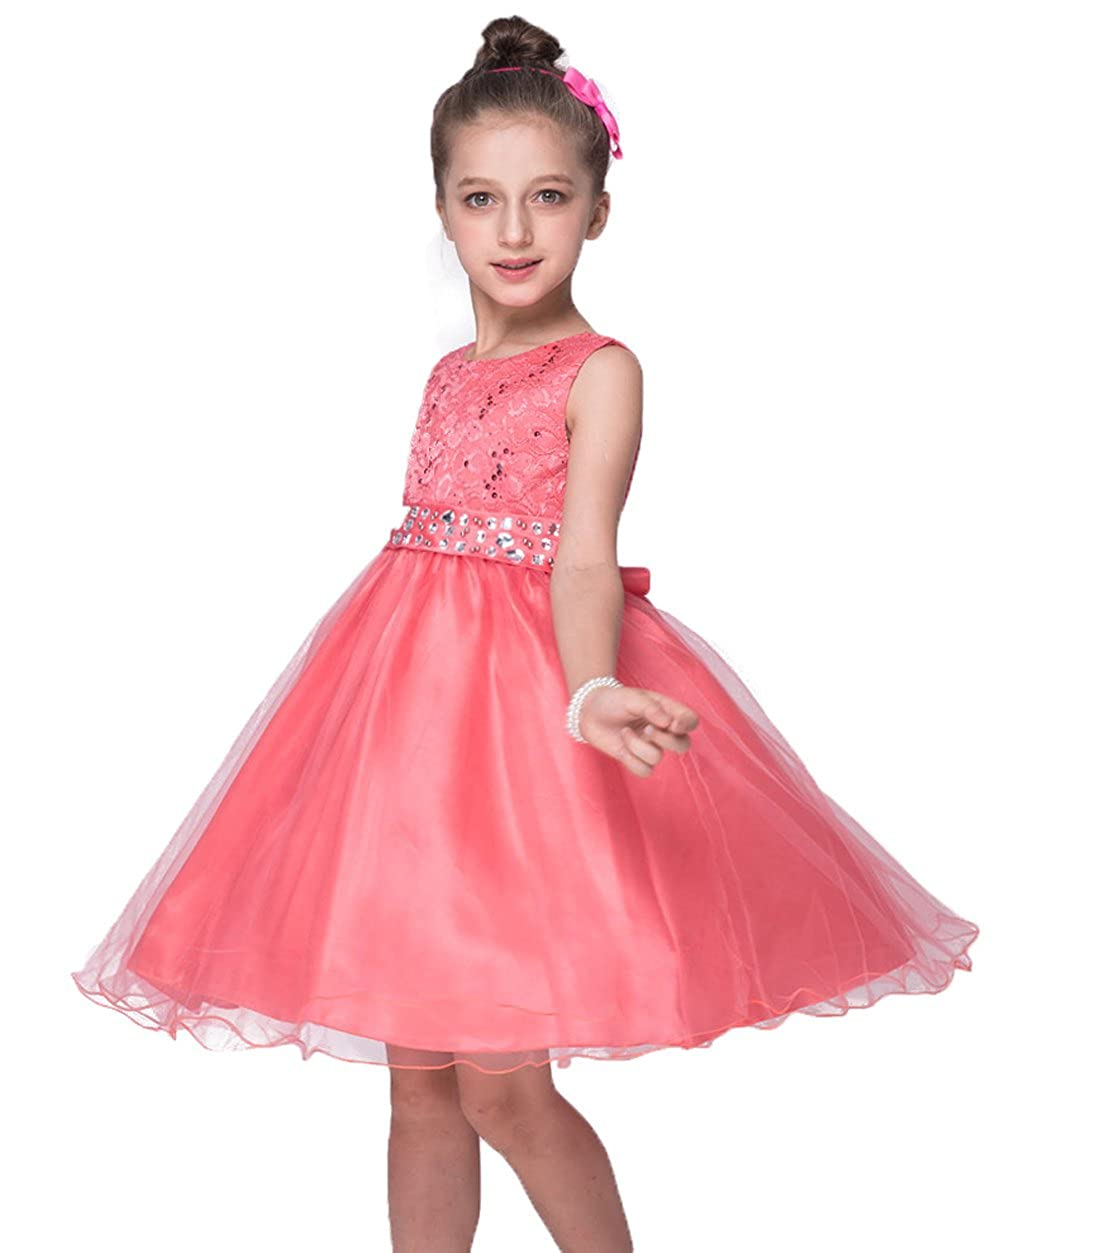 33d13247673  COTTON LINER UNDER THE TULLE SO IT S NOT SCRATCHY  The girls dress  material is Cotton + polyester